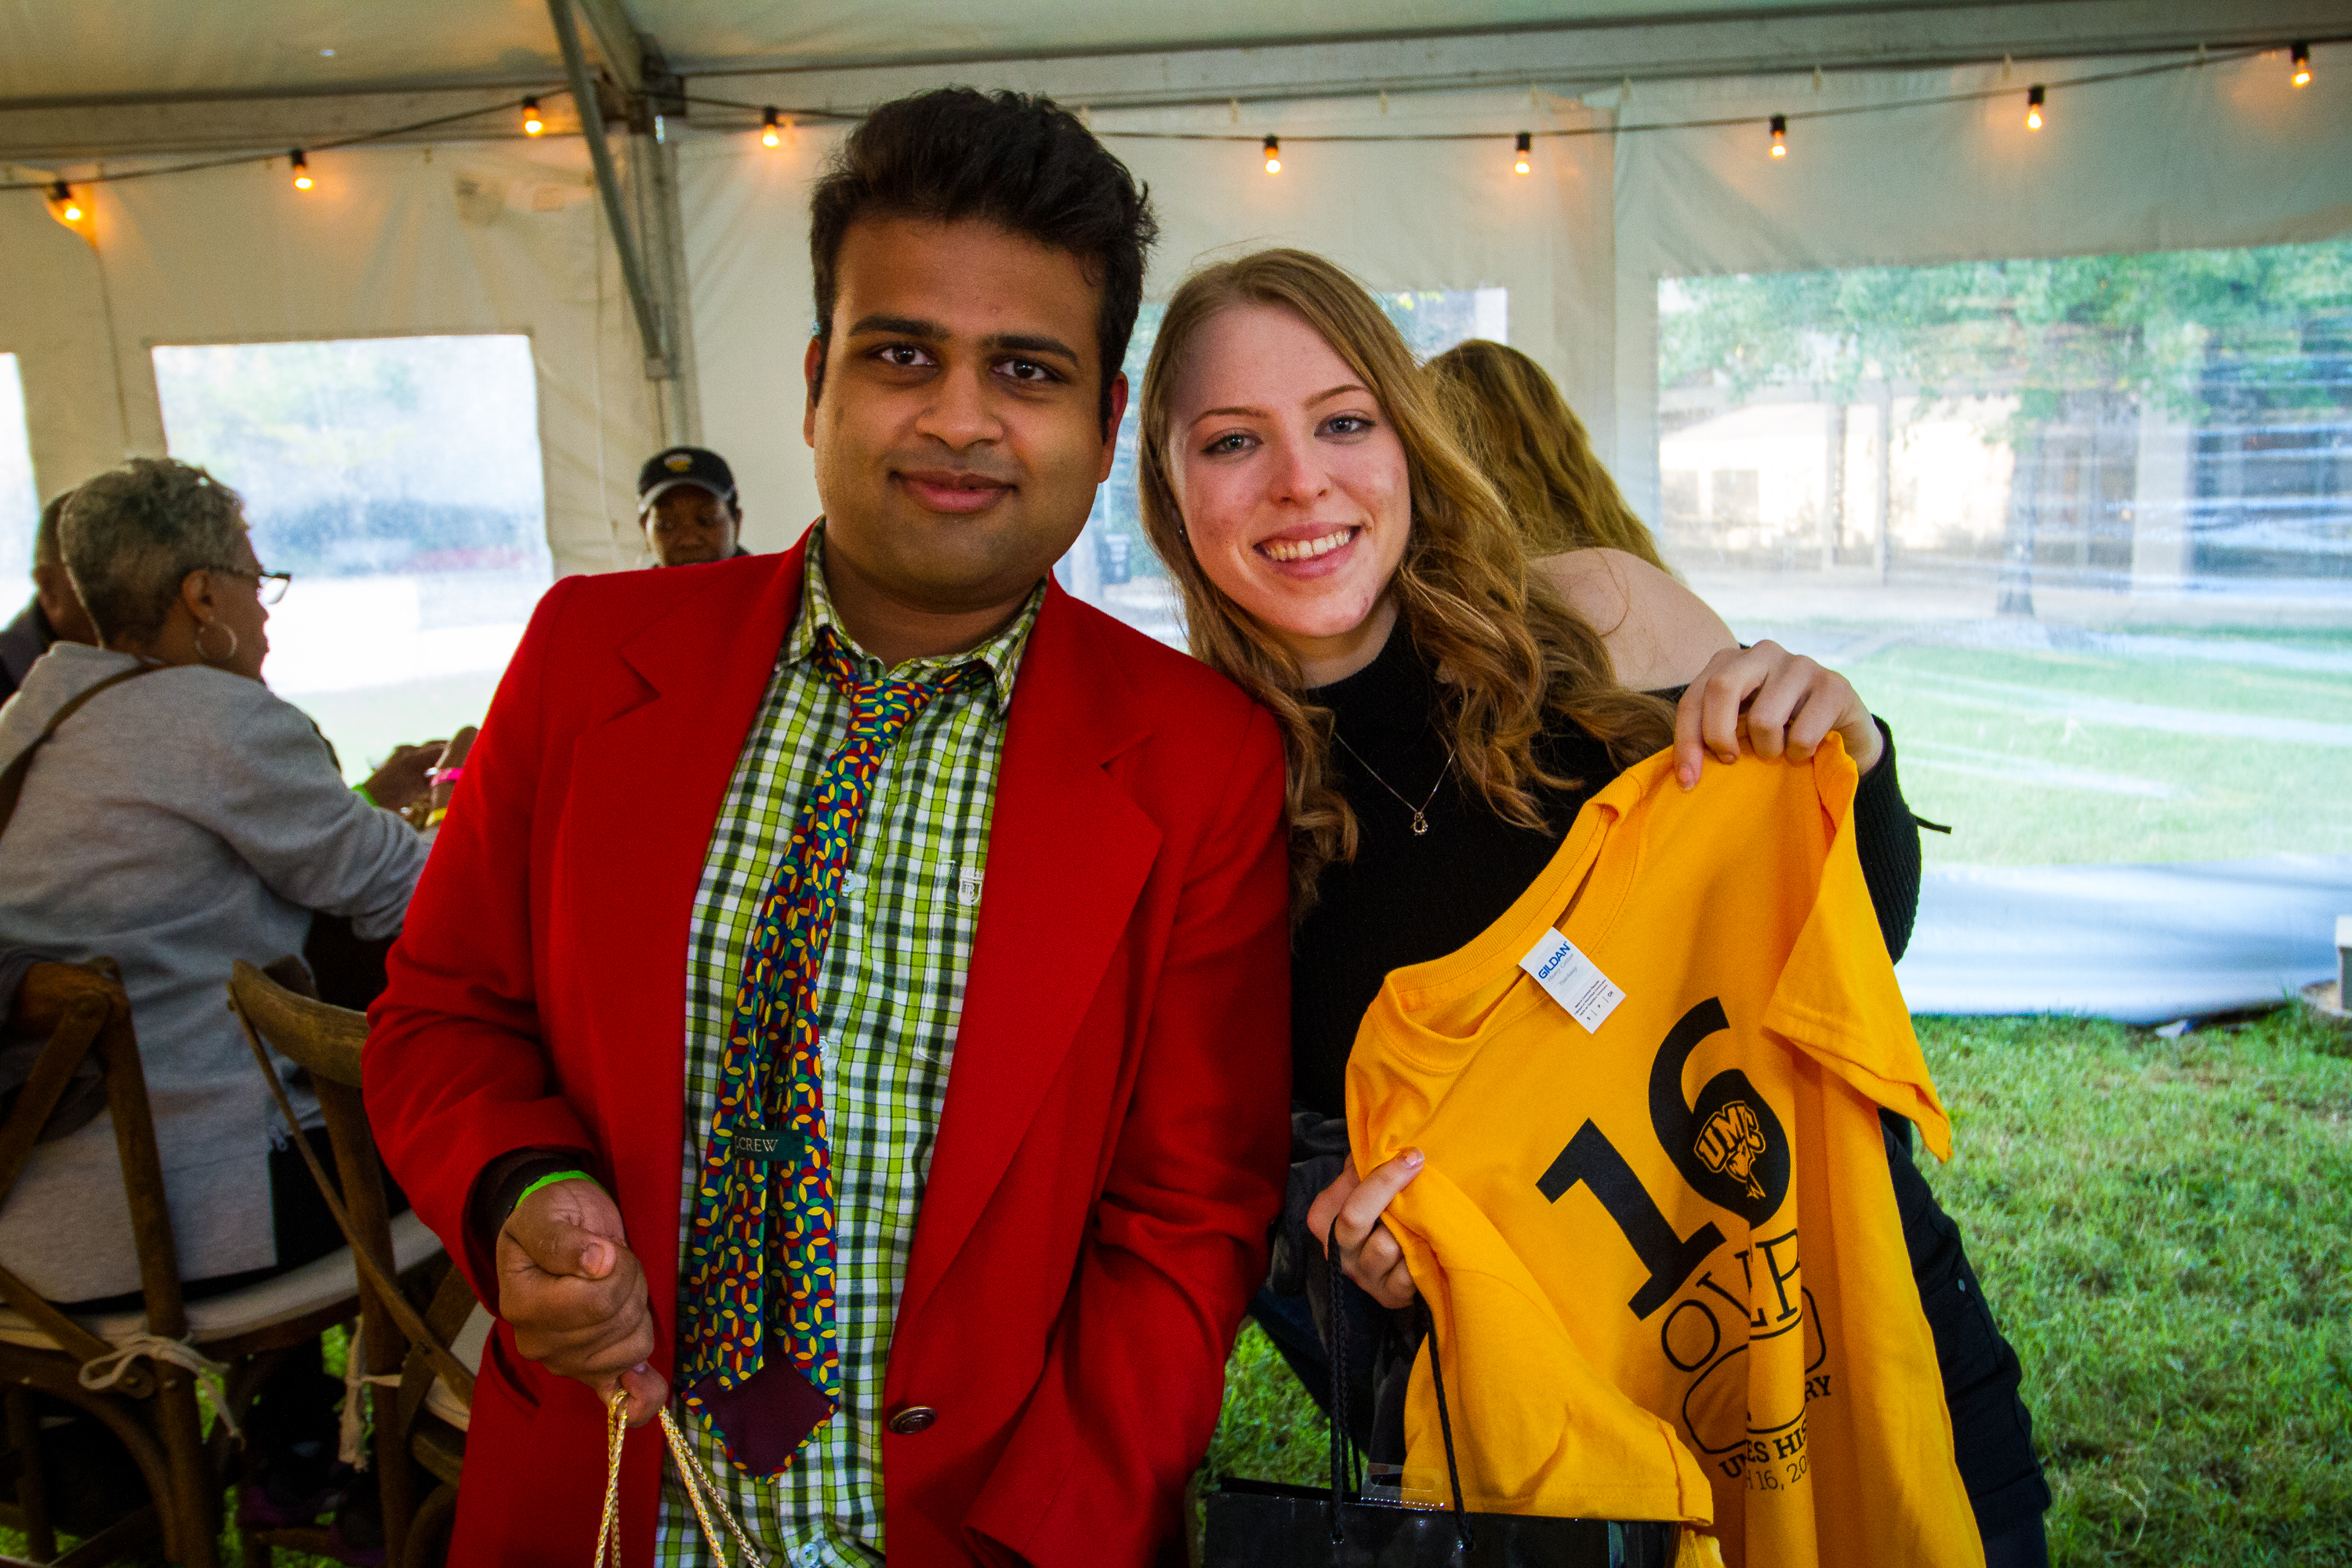 Man and woman pose together at Homecoming Woman holding 16 over UMBC shirt